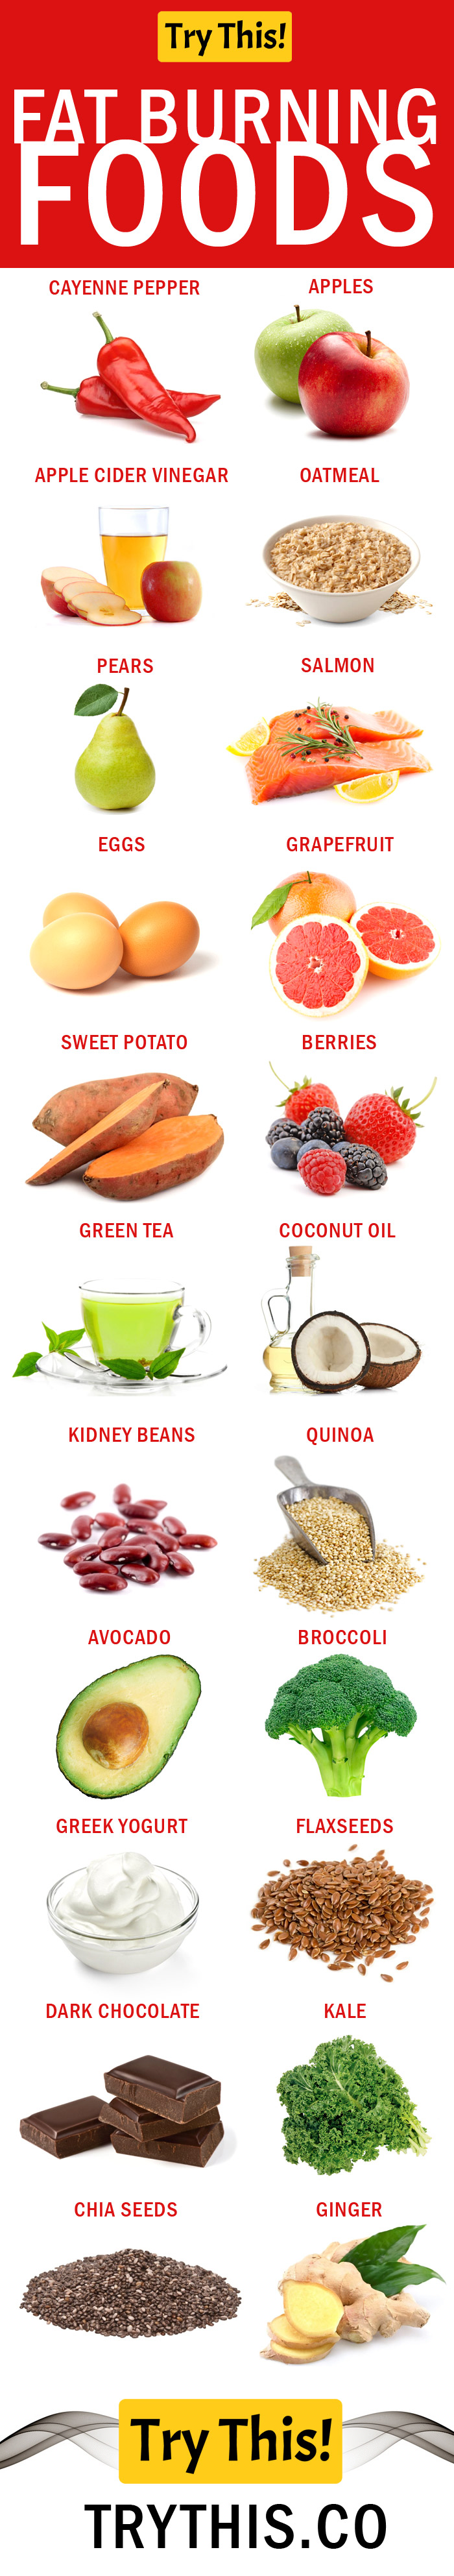 High Metabolism Burning Foods